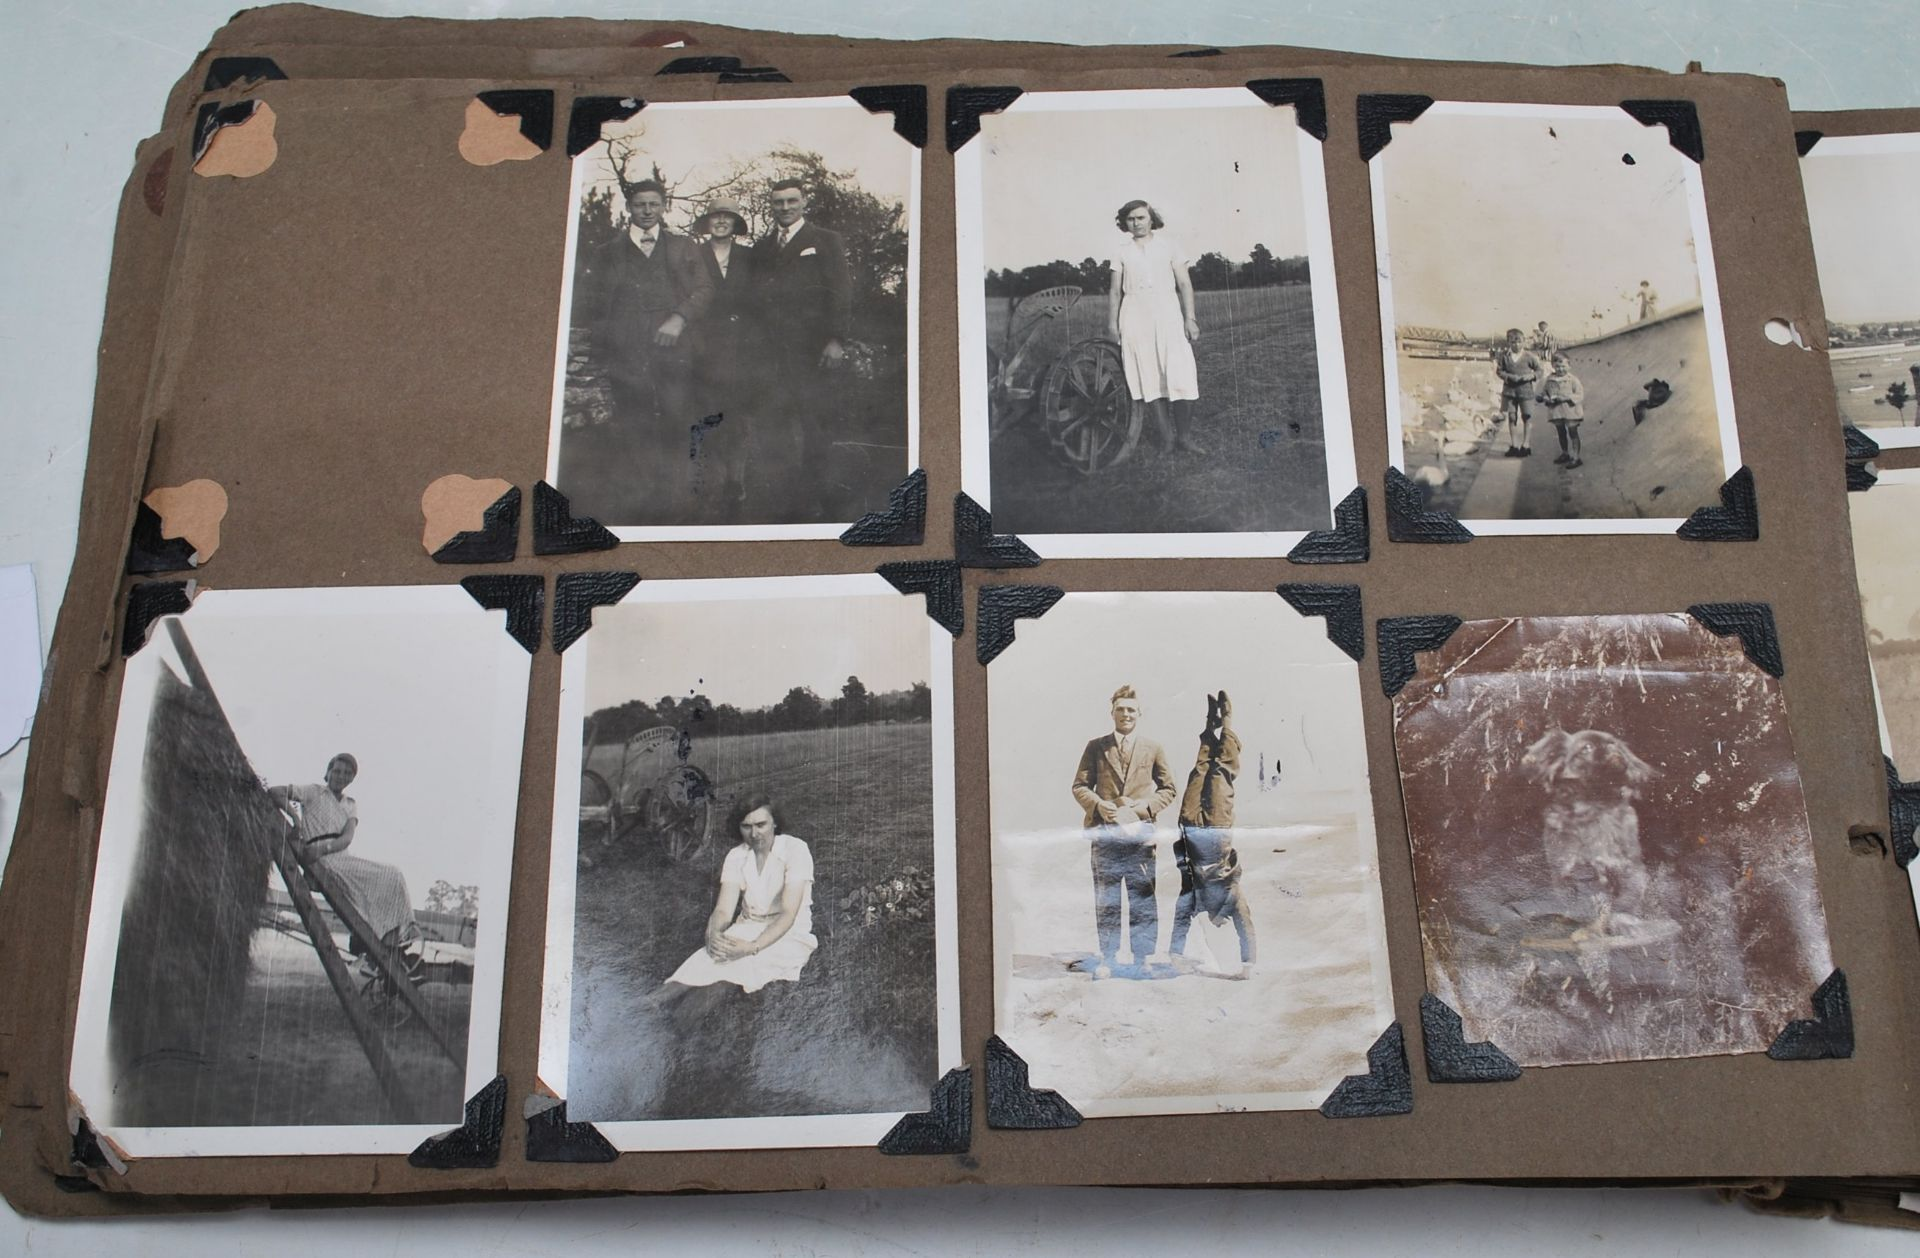 EARLY 20TH CENTURY BLACK AND WHITE PHOTO ALBUM - Image 8 of 14